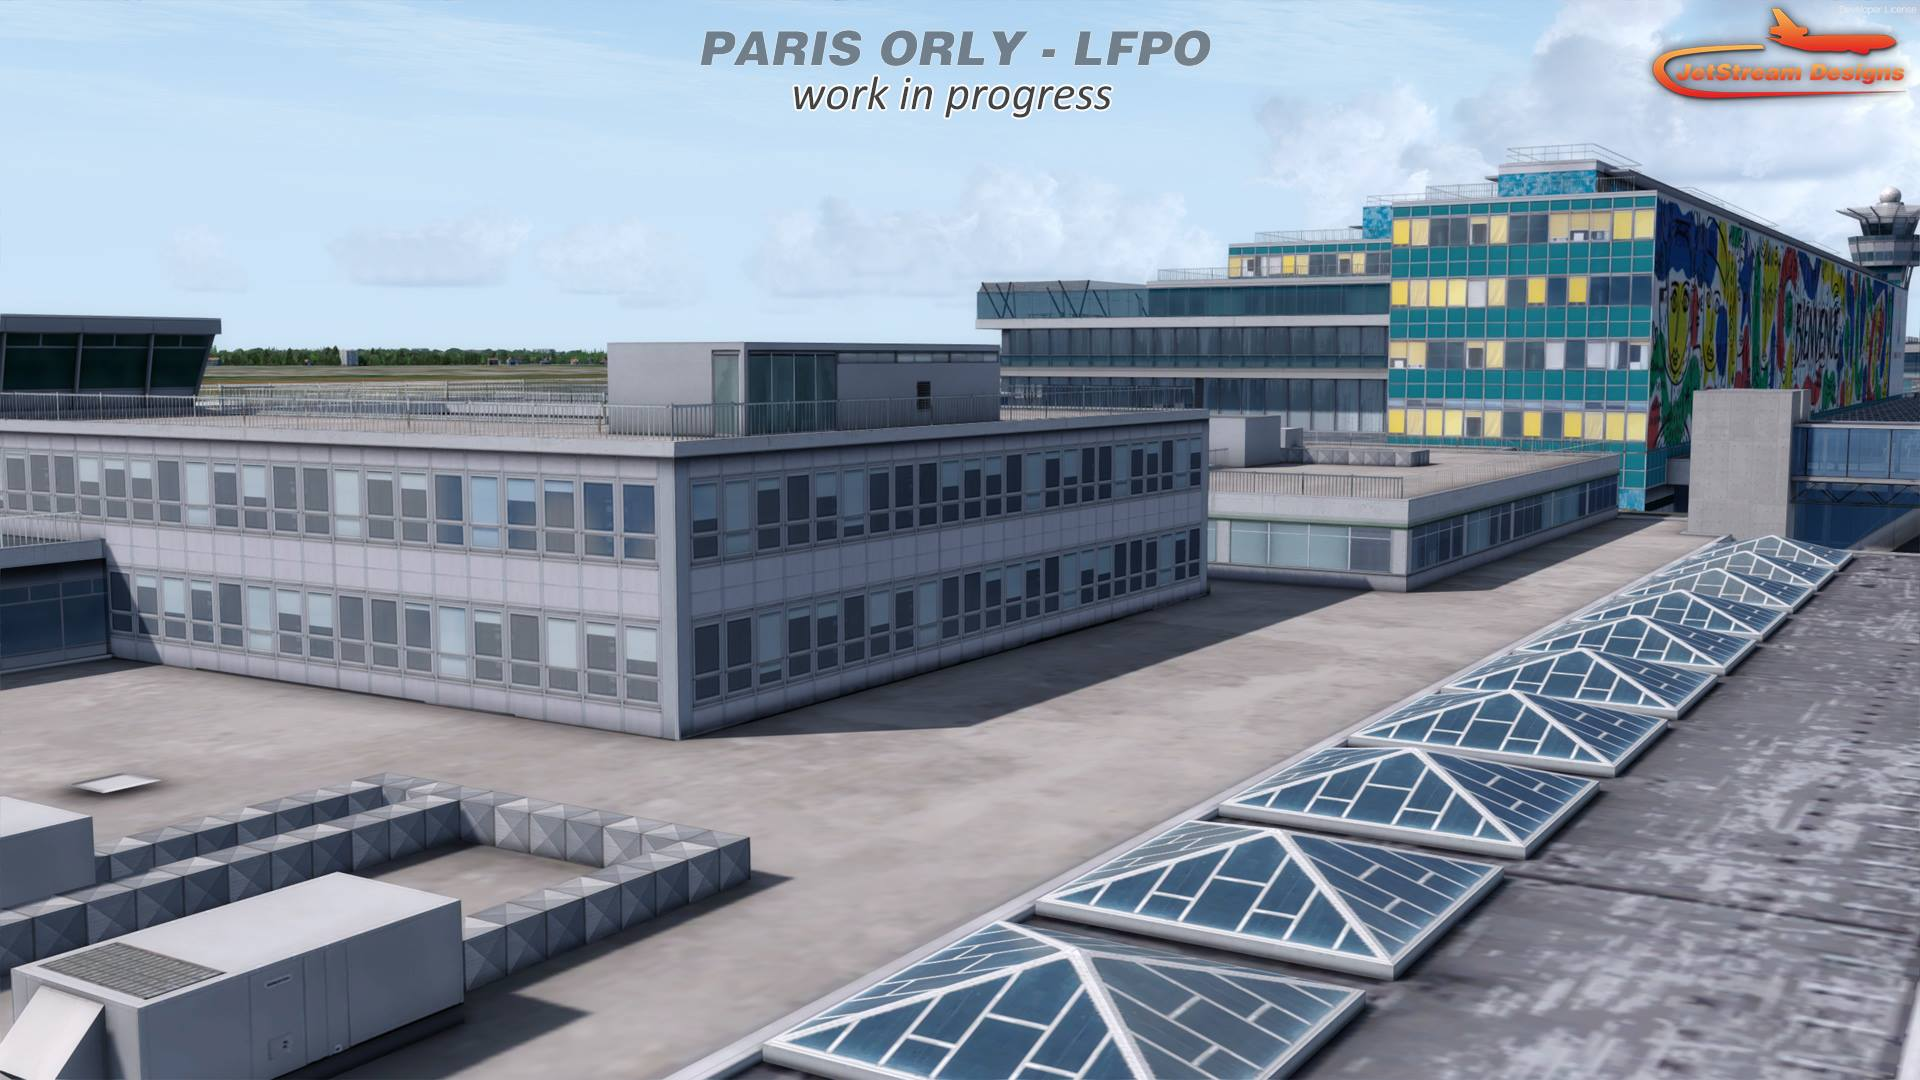 Aeroporto Orly : Jetstream designs paris orly preview jetstream designs have been